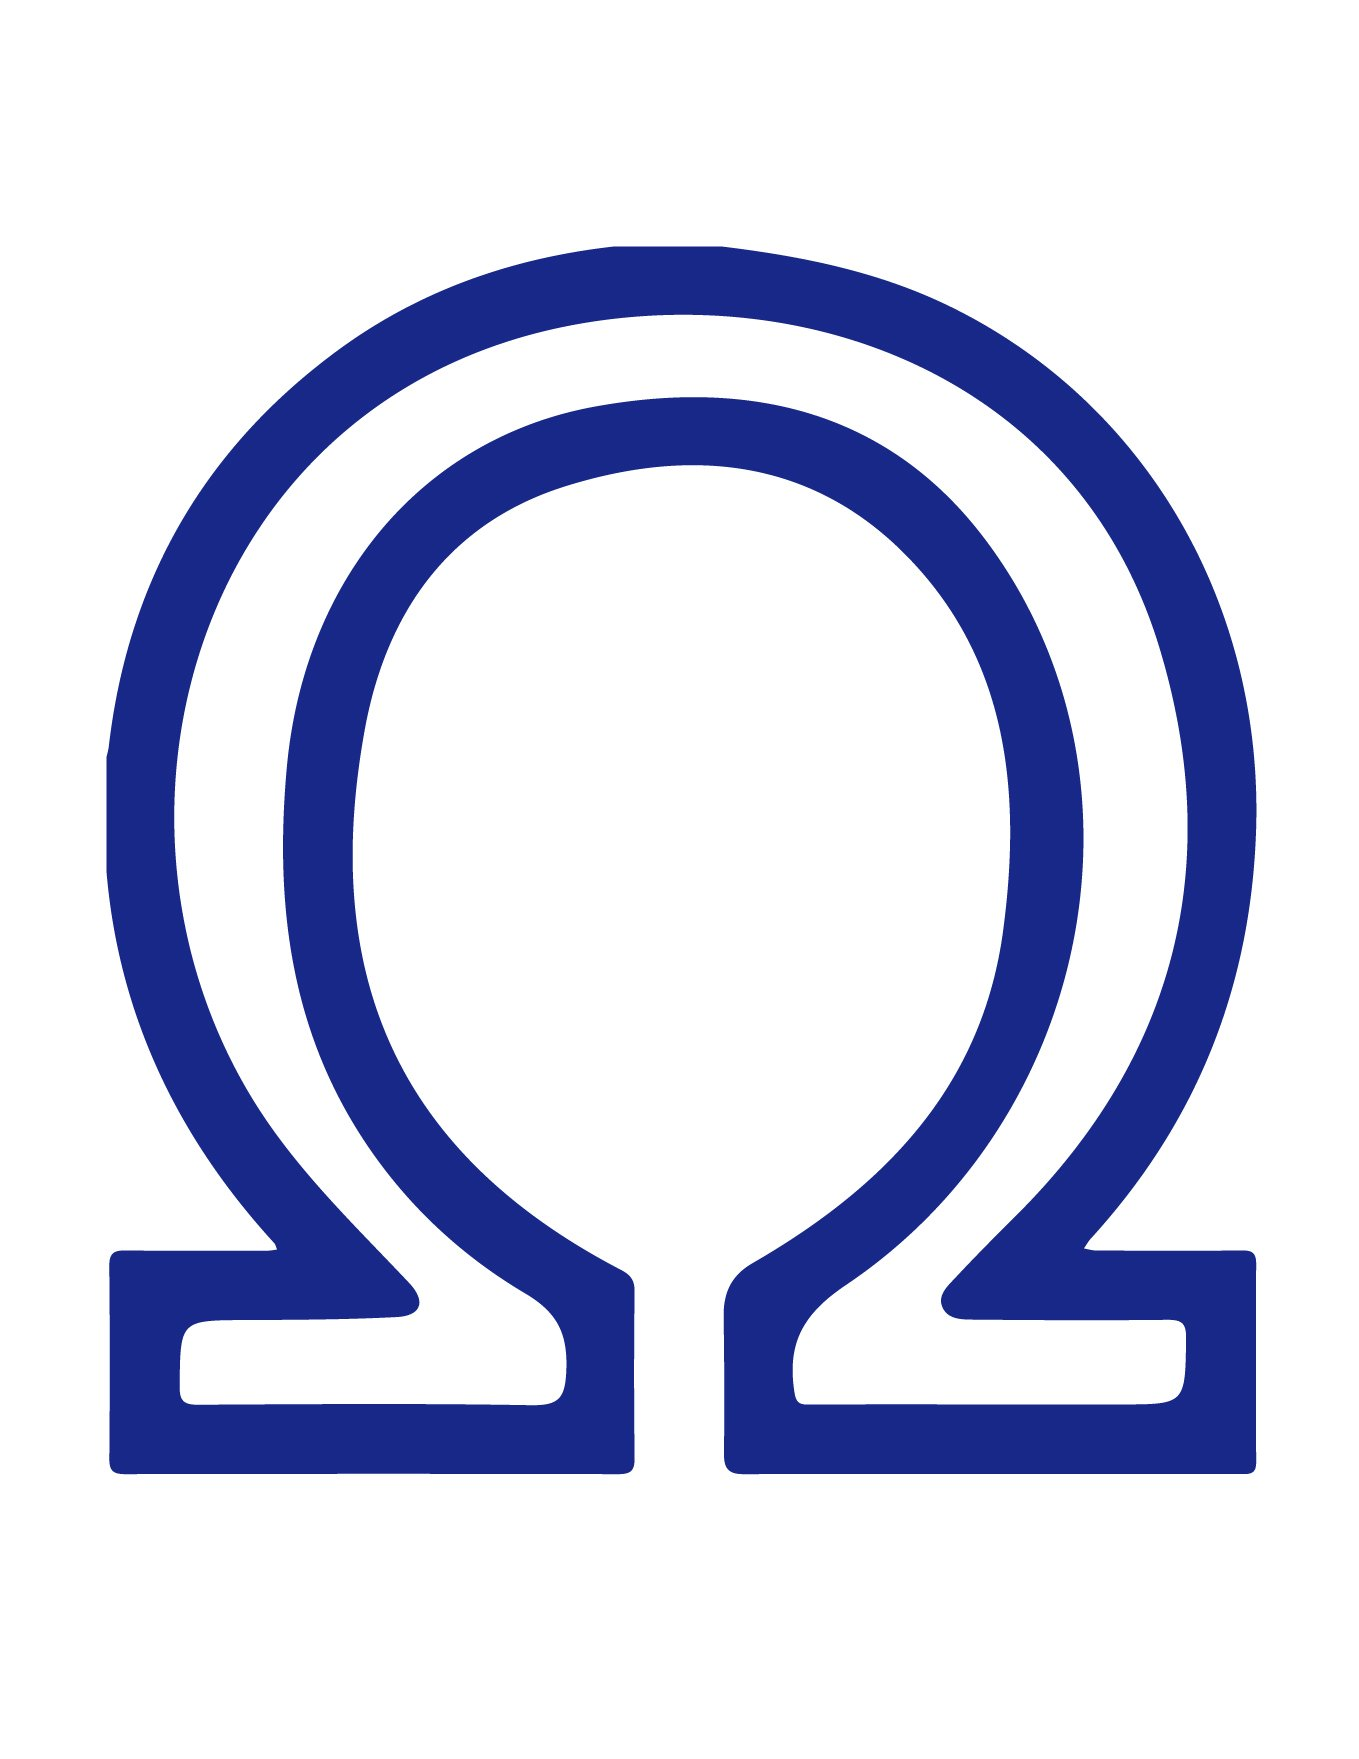 Omega Symbolsign And Its Meaning Mythologian